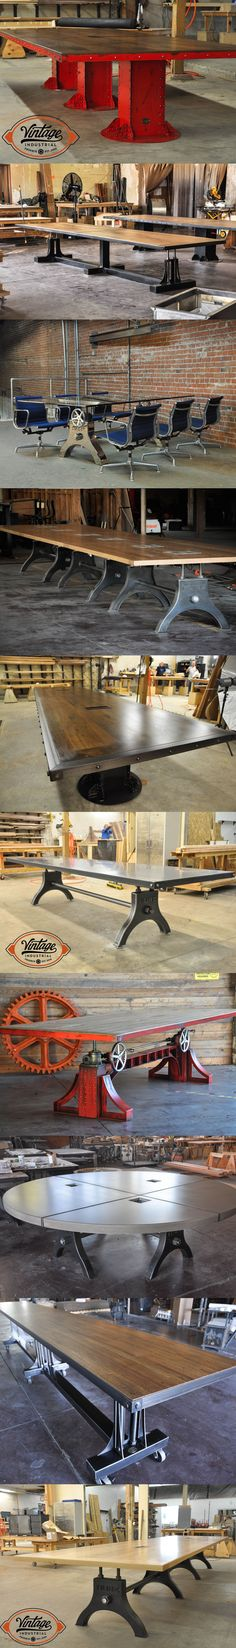 Vintage Industrial offers several conference table options that are all customizable with size, finish, color, dataport, and top material. We build to order in Phoenix and ship everywhere! #vintageindustrialfurniture